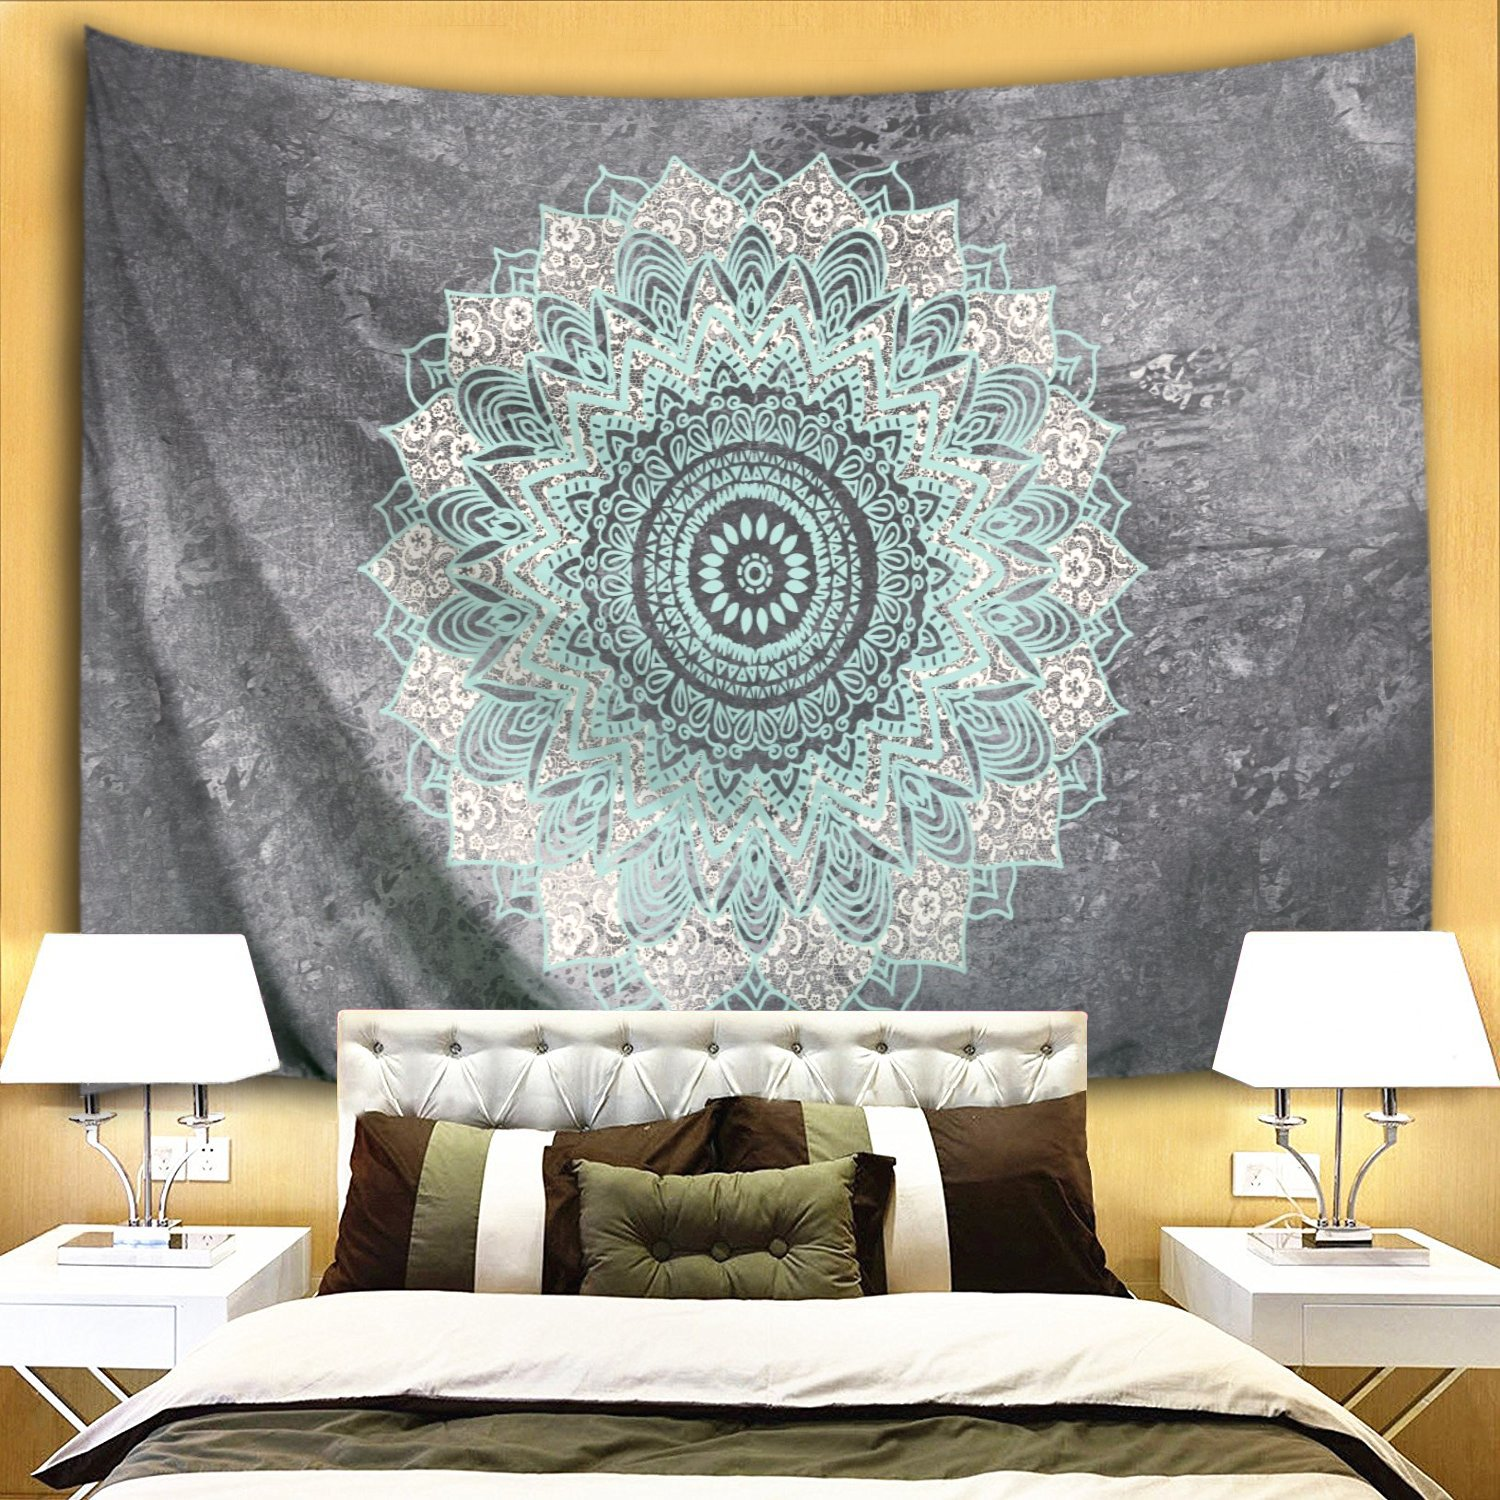 153x103cm Colorful Star Blue Gray Mandala Design Wall Hanging Tapestry Polyester Fabric Wall Blanket Decorations for Bedroom Dorm Living Room 60 W x 40 L